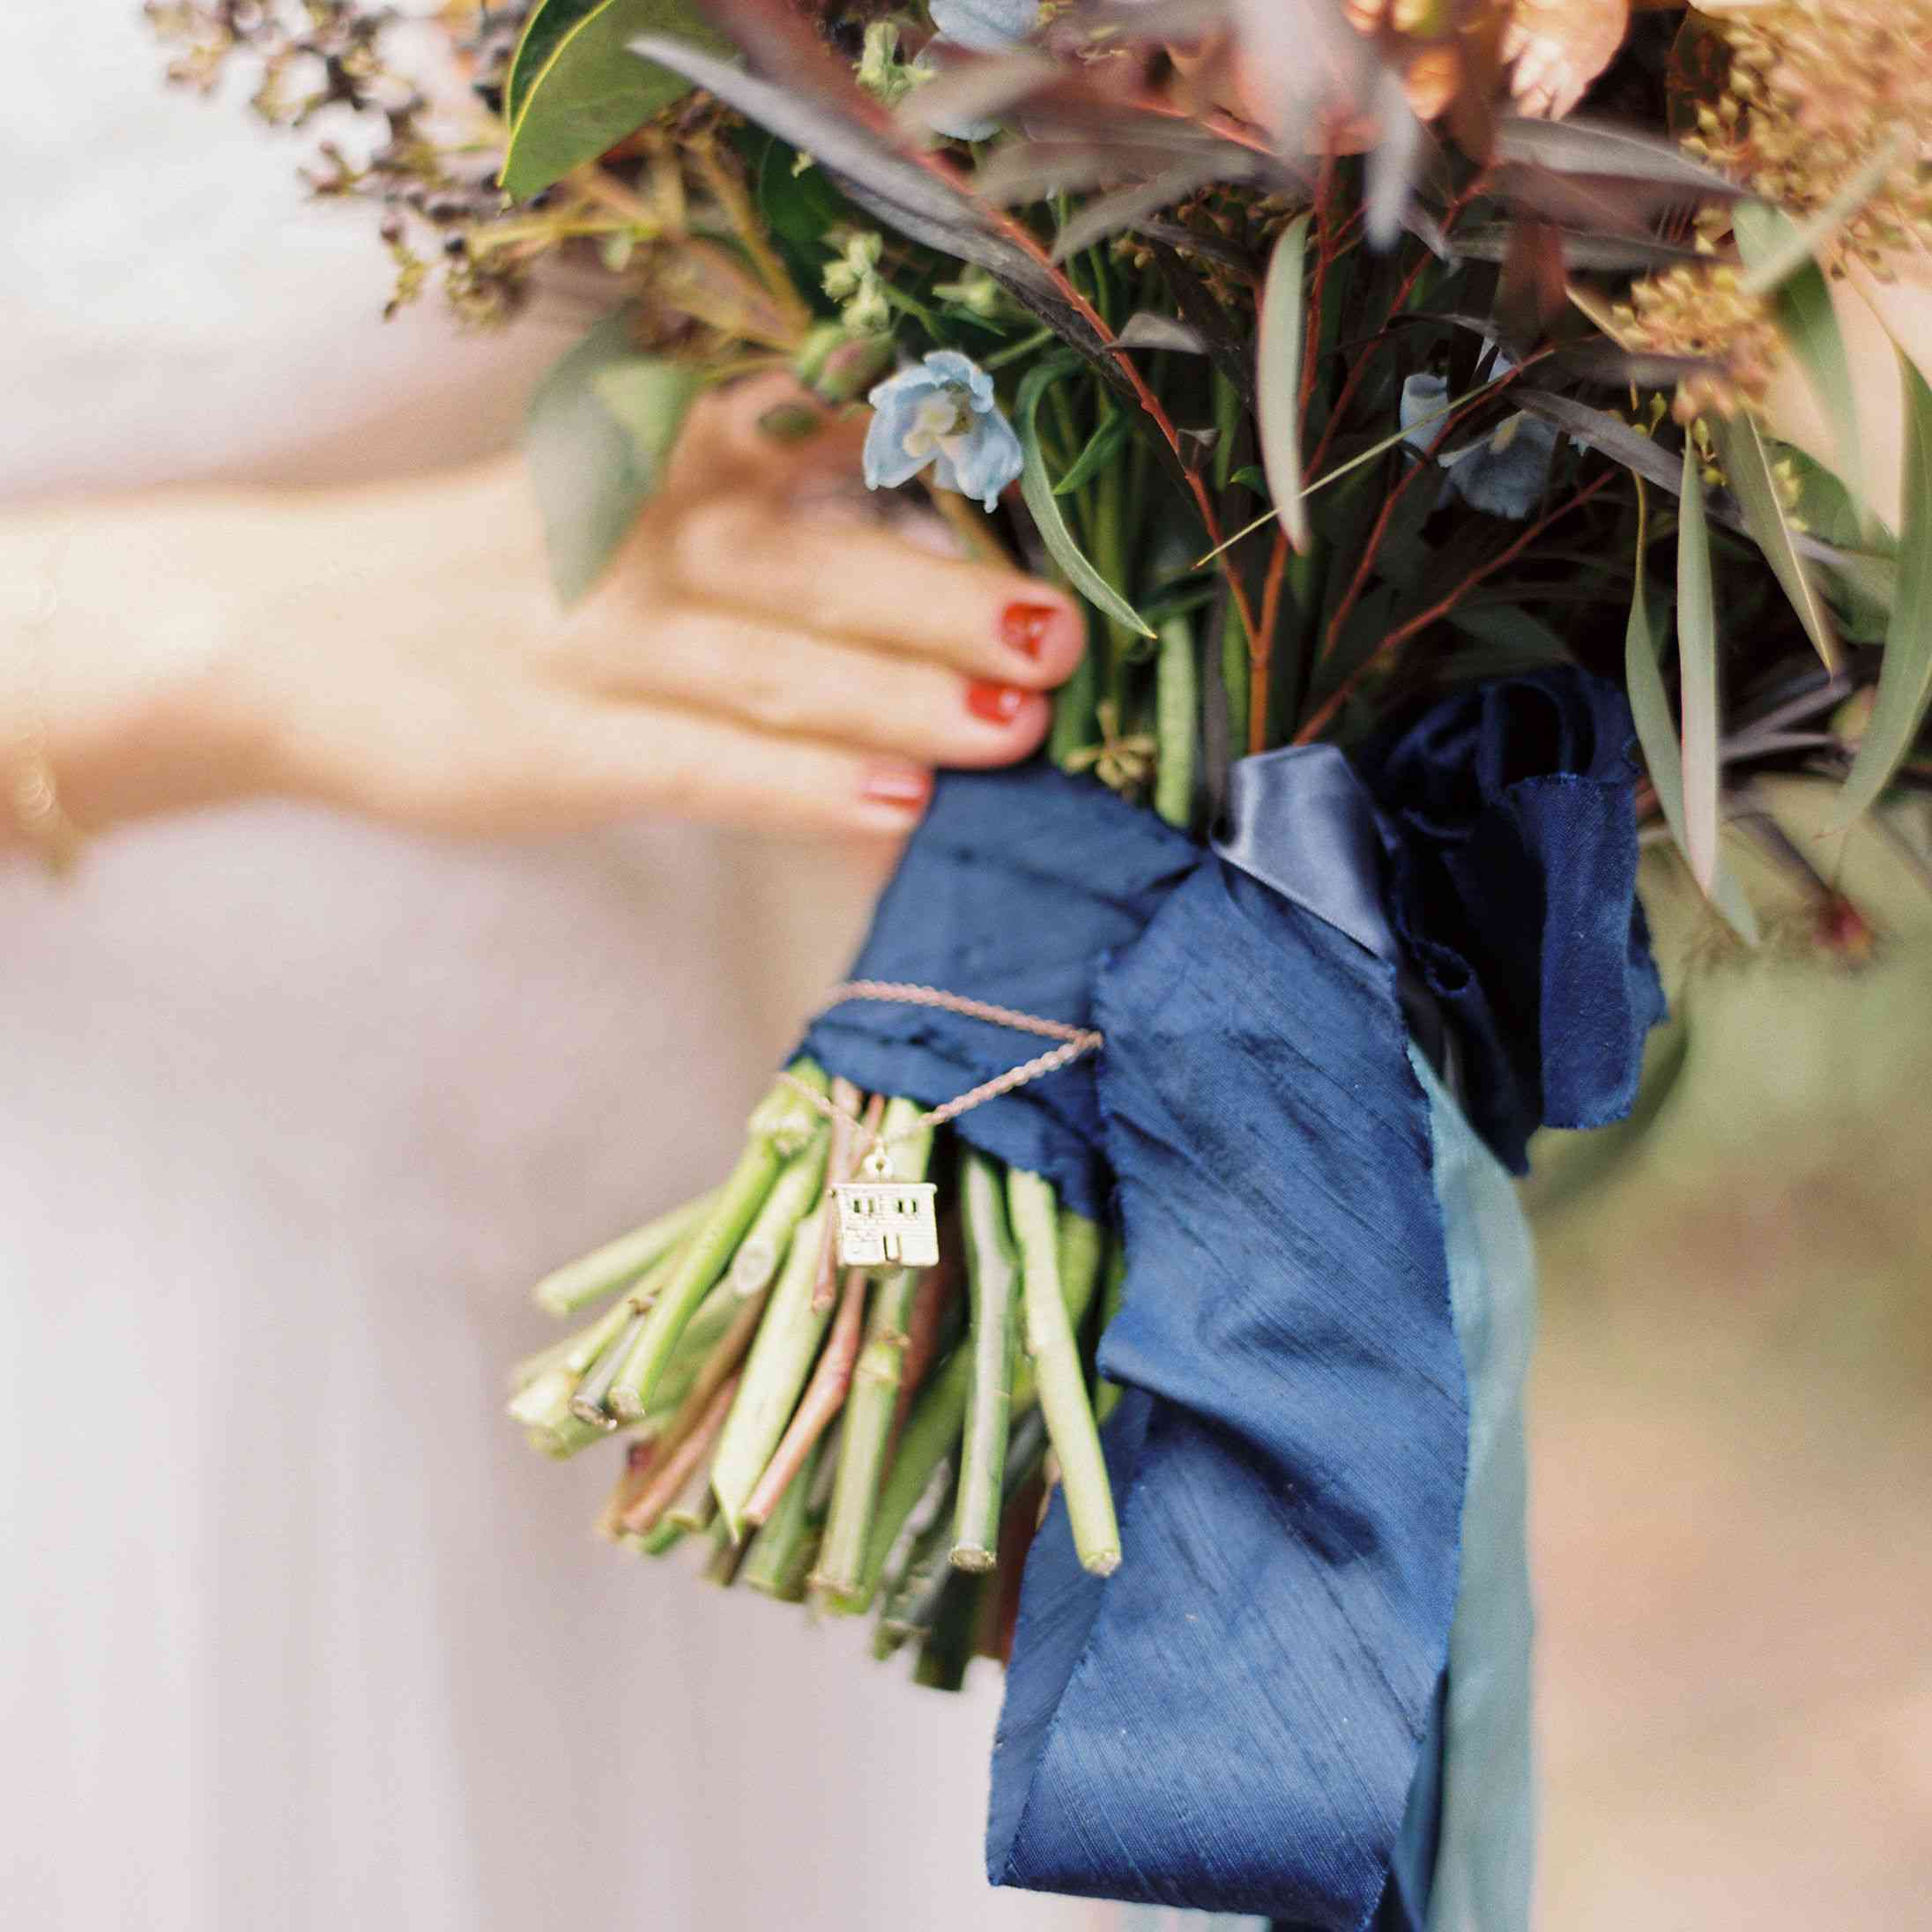 whimsical savannah, ribbons tied around bouquet